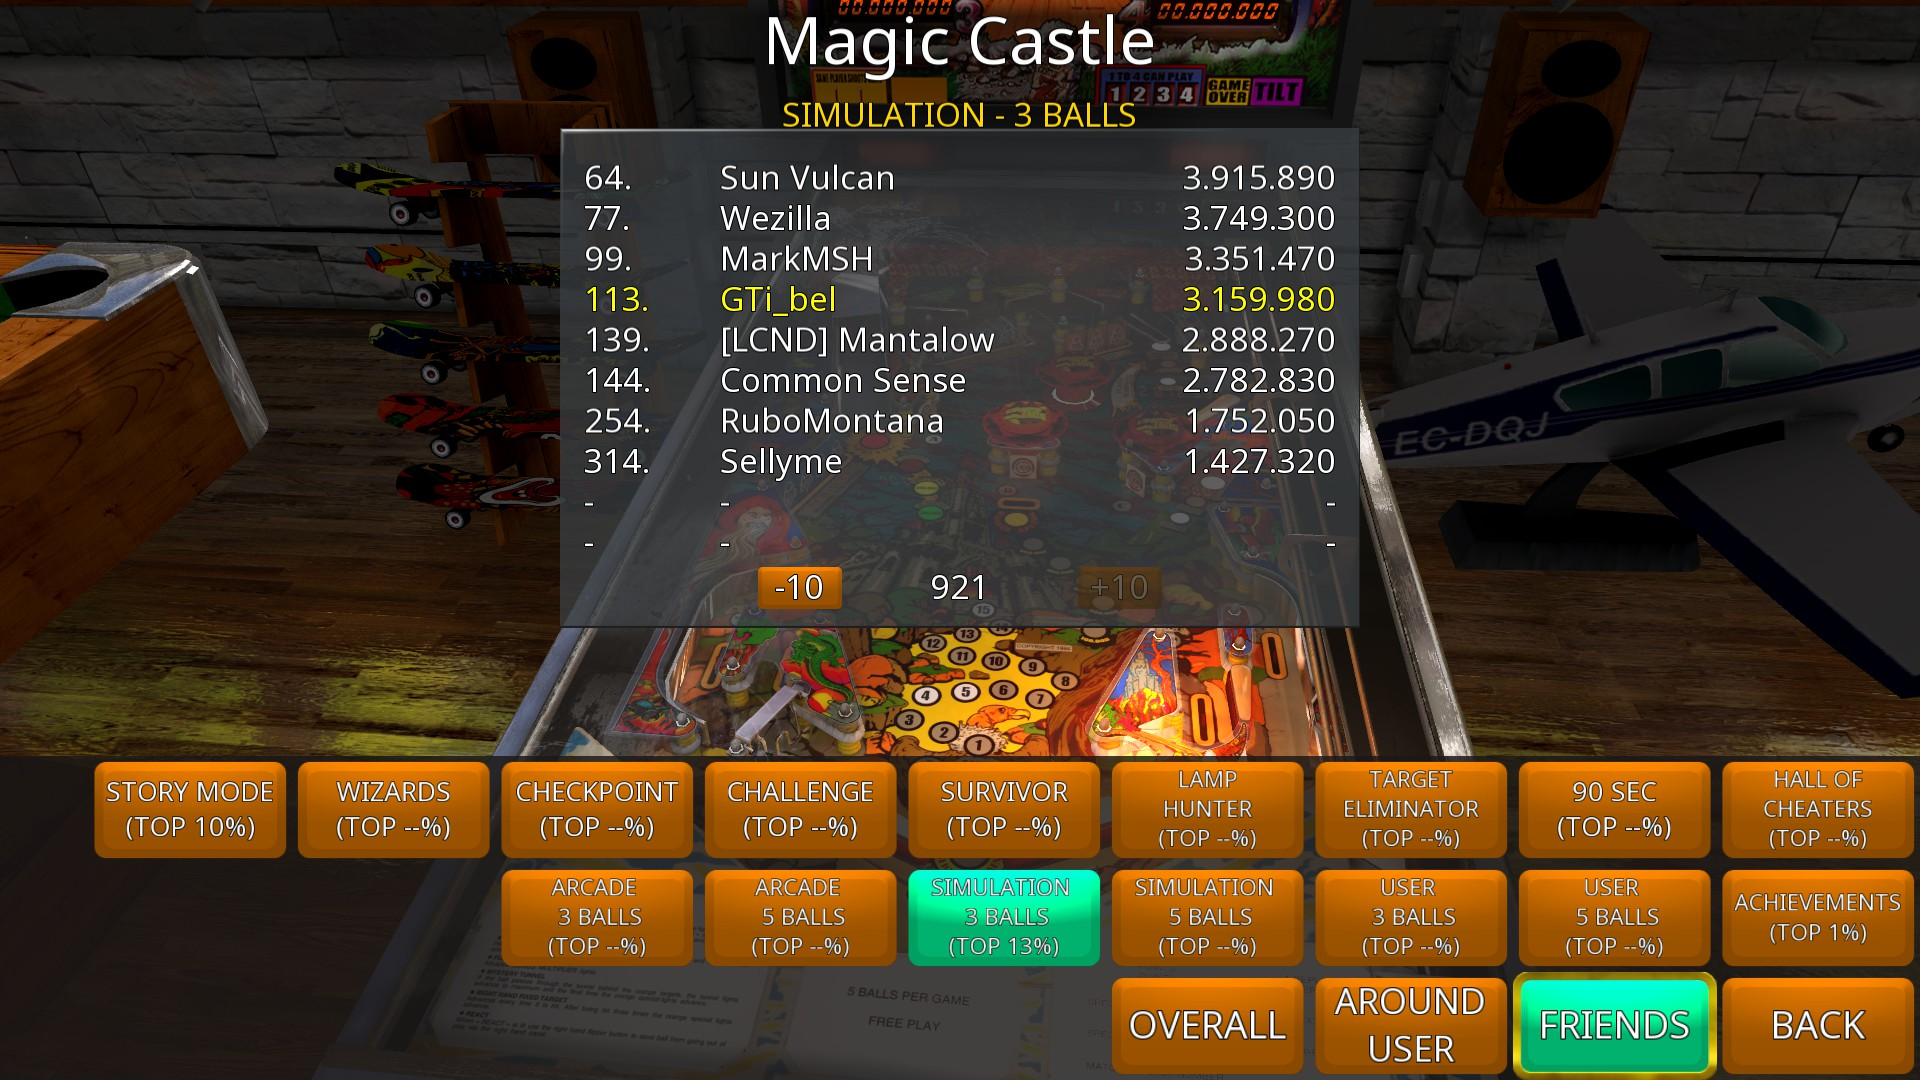 GTibel: Zaccaria Pinball: Magic Castle [3 balls] (PC) 3,159,980 points on 2018-09-02 08:59:30